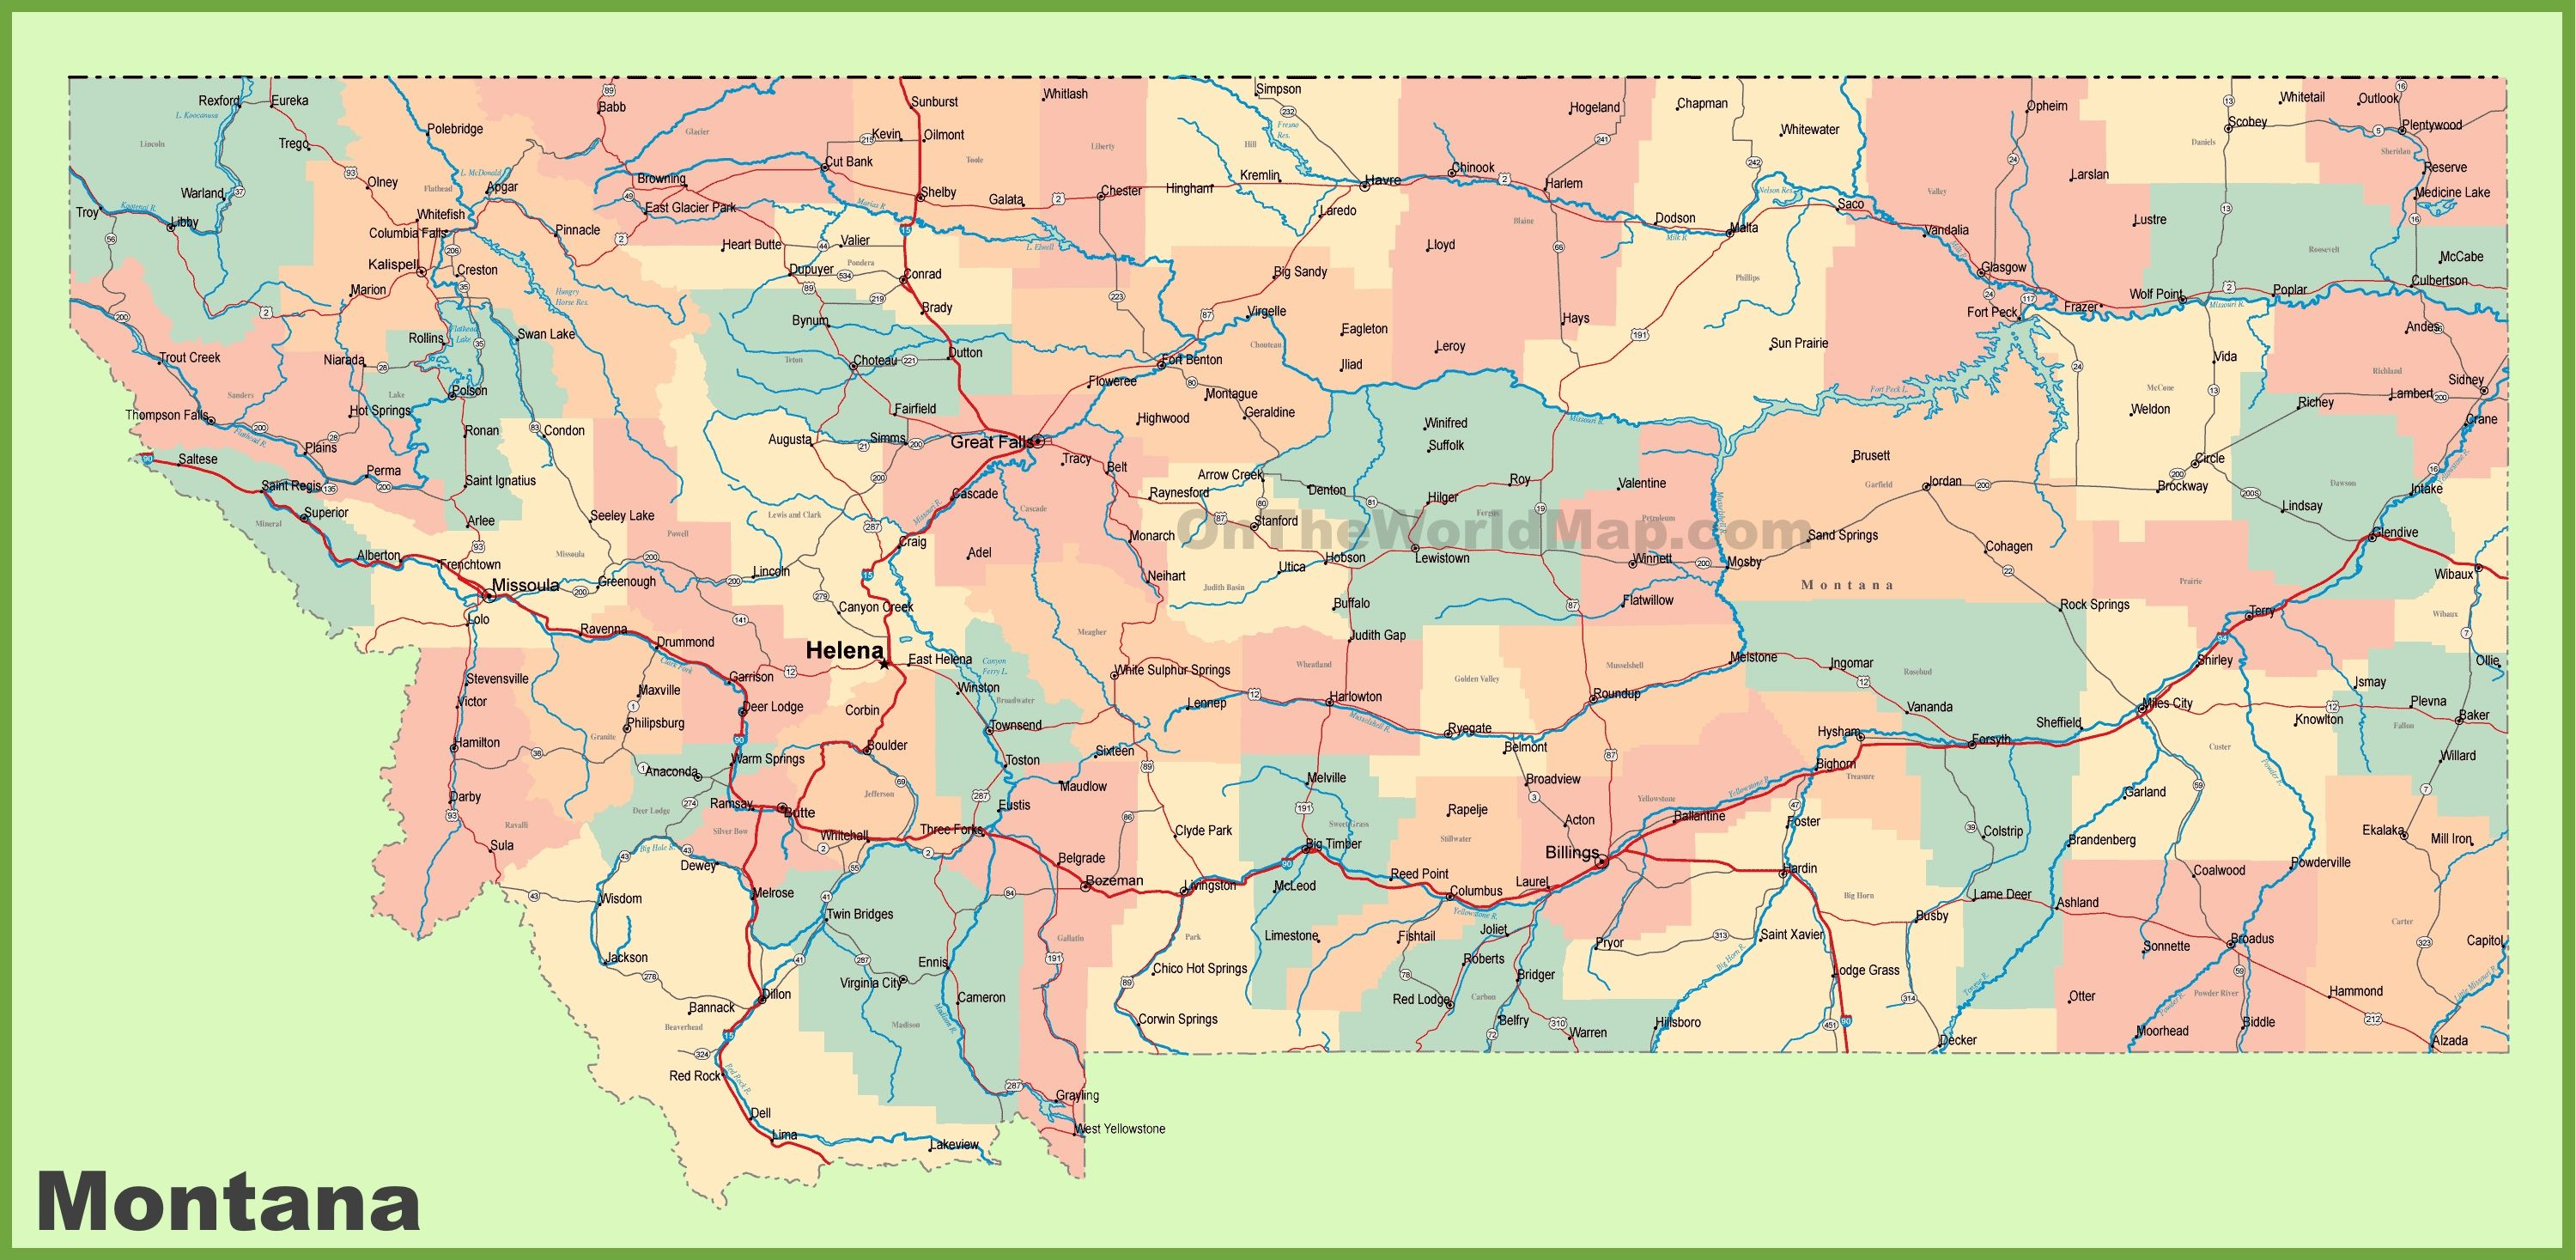 Map Of Montana With Cities Road map of Montana with cities | Travel | Highway map, Map, State map